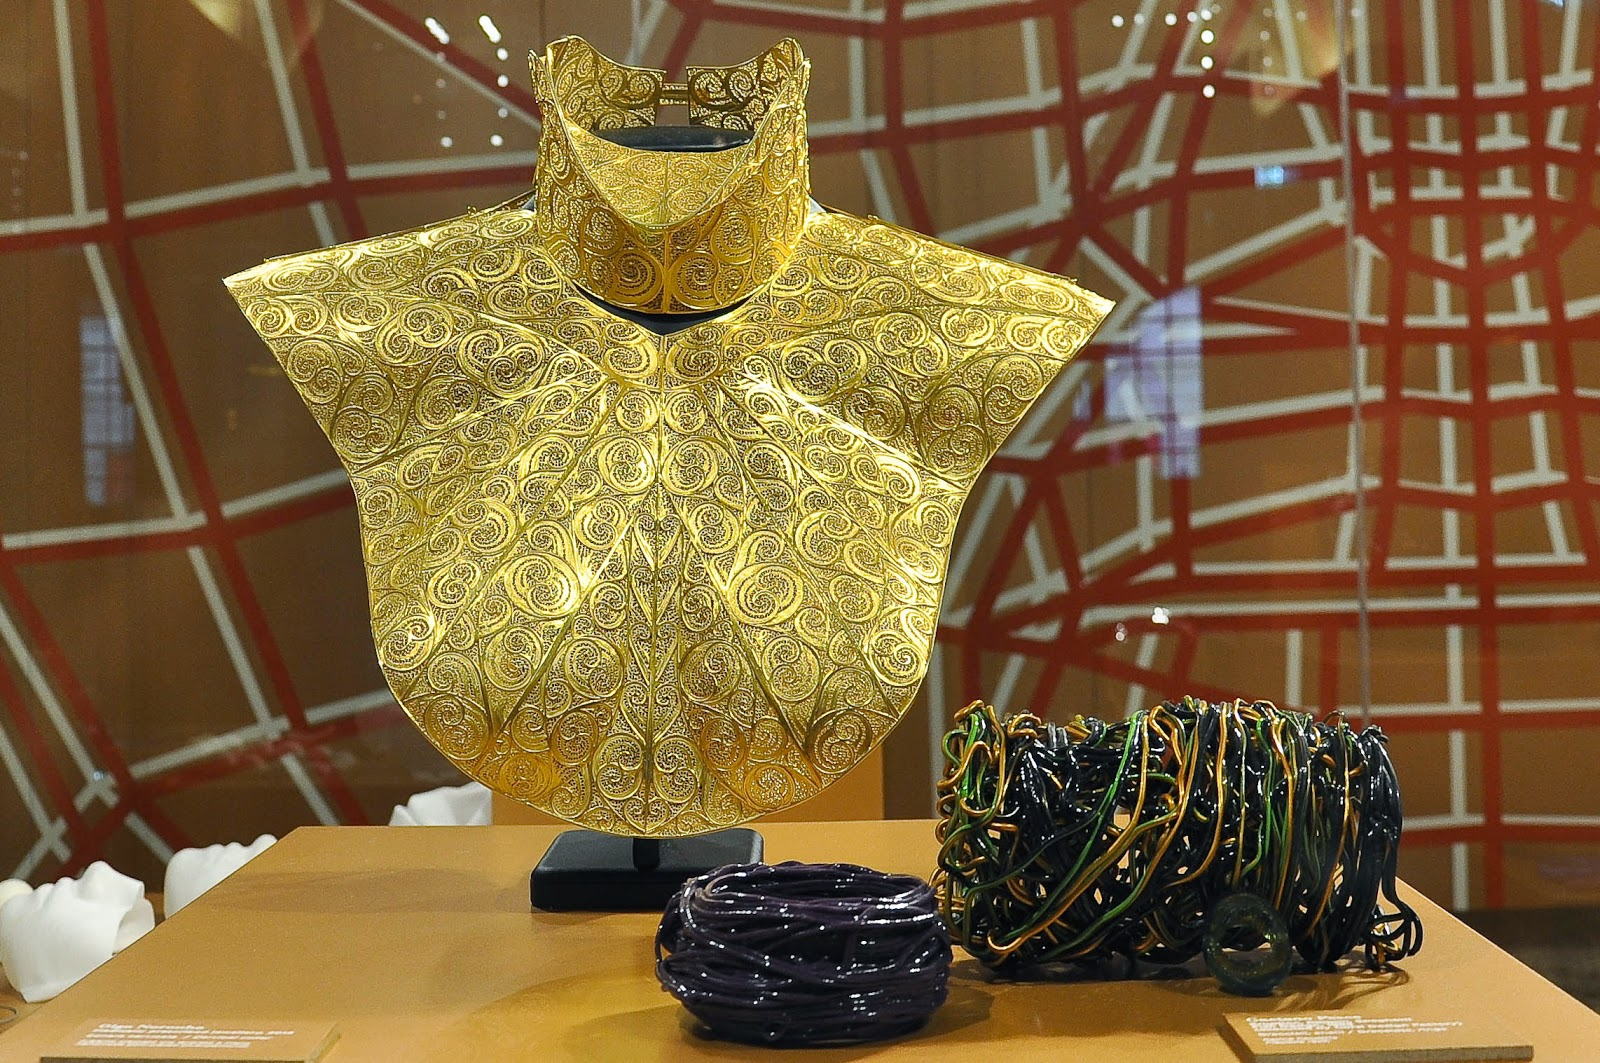 Jewellery pieces in the Future room of the Museum of the Jewellery in Vicenza